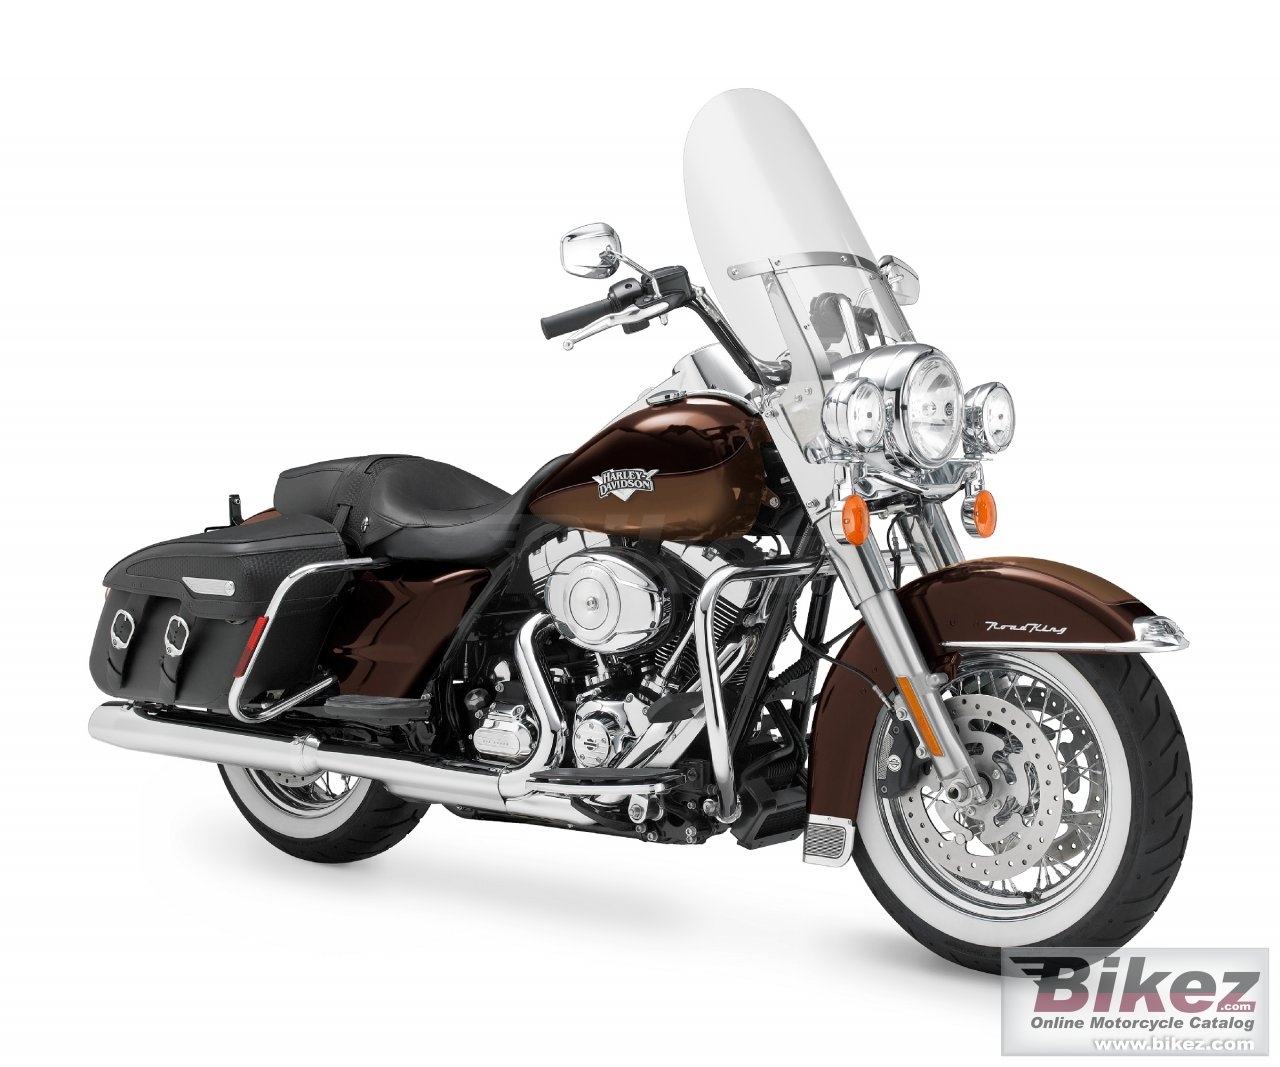 Big Harley-Davidson flhrc road king classic picture and wallpaper from Bikez.com